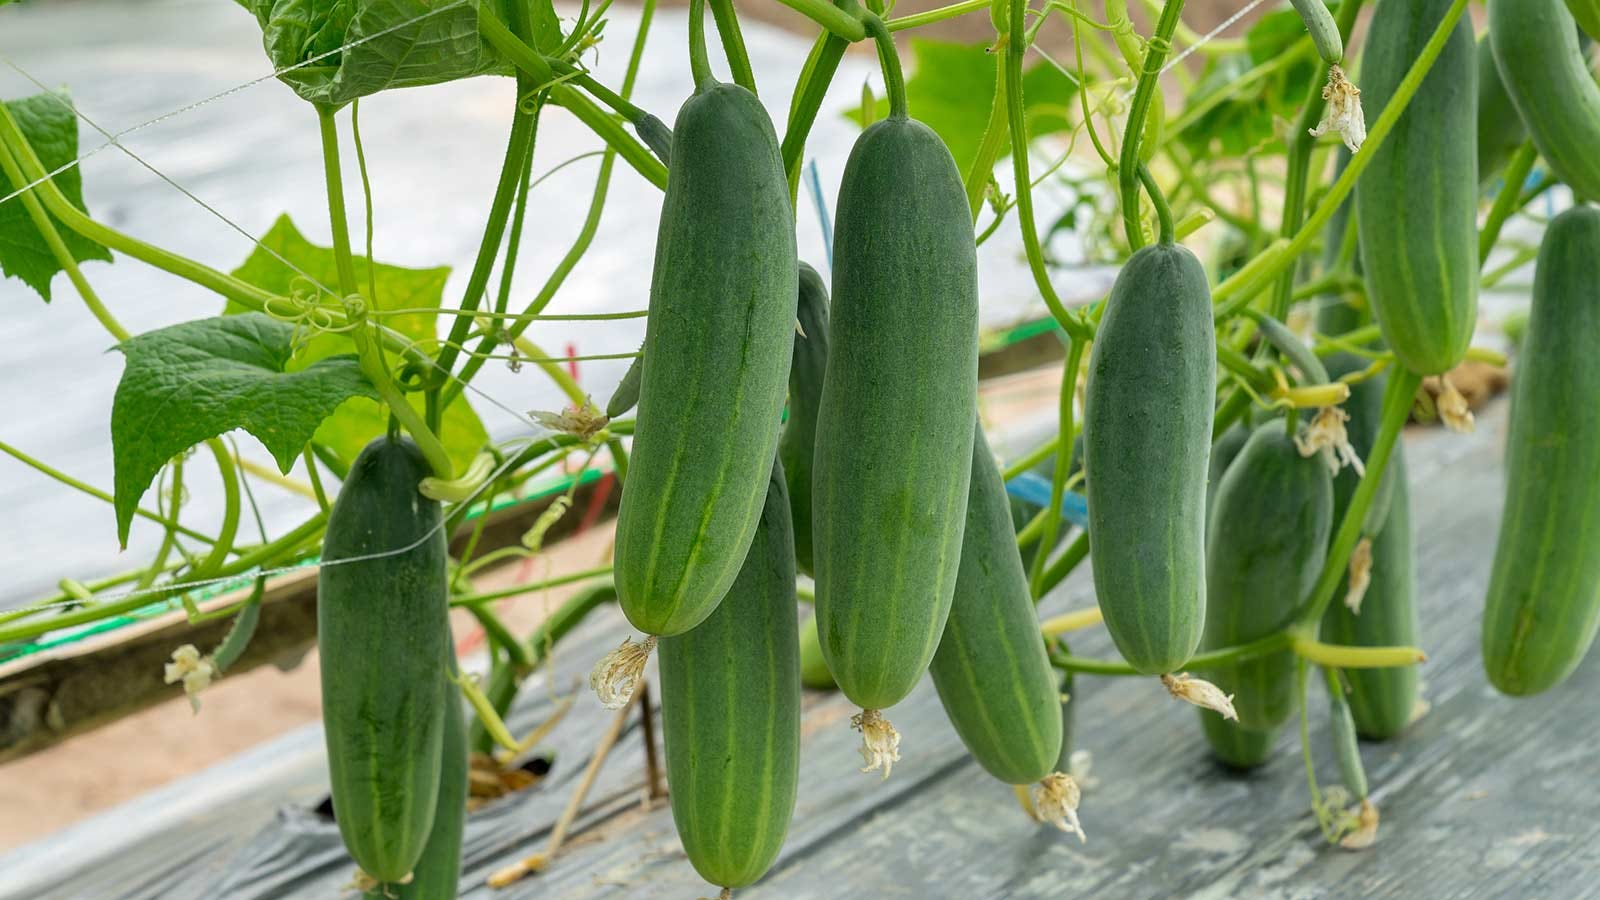 Cucumbers, hanging off the railing of a deck down towards the planking.